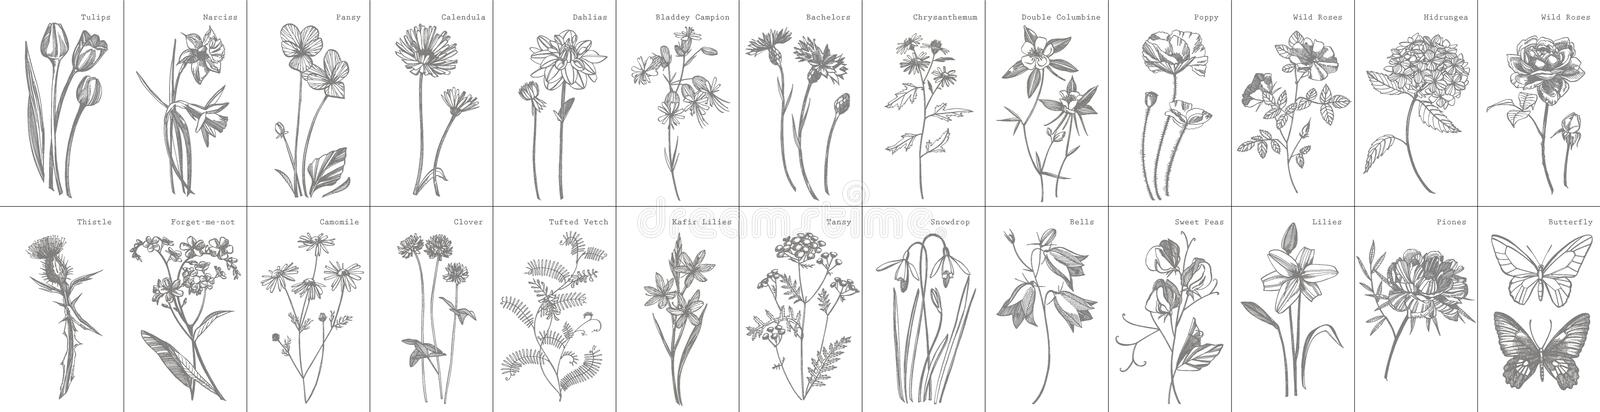 Collection of hand drawn flowers and herbs. Botanical plant illustration. Vintage medicinal herbs sketch set of ink hand. Drawn medical herbs and plants sketch stock photo